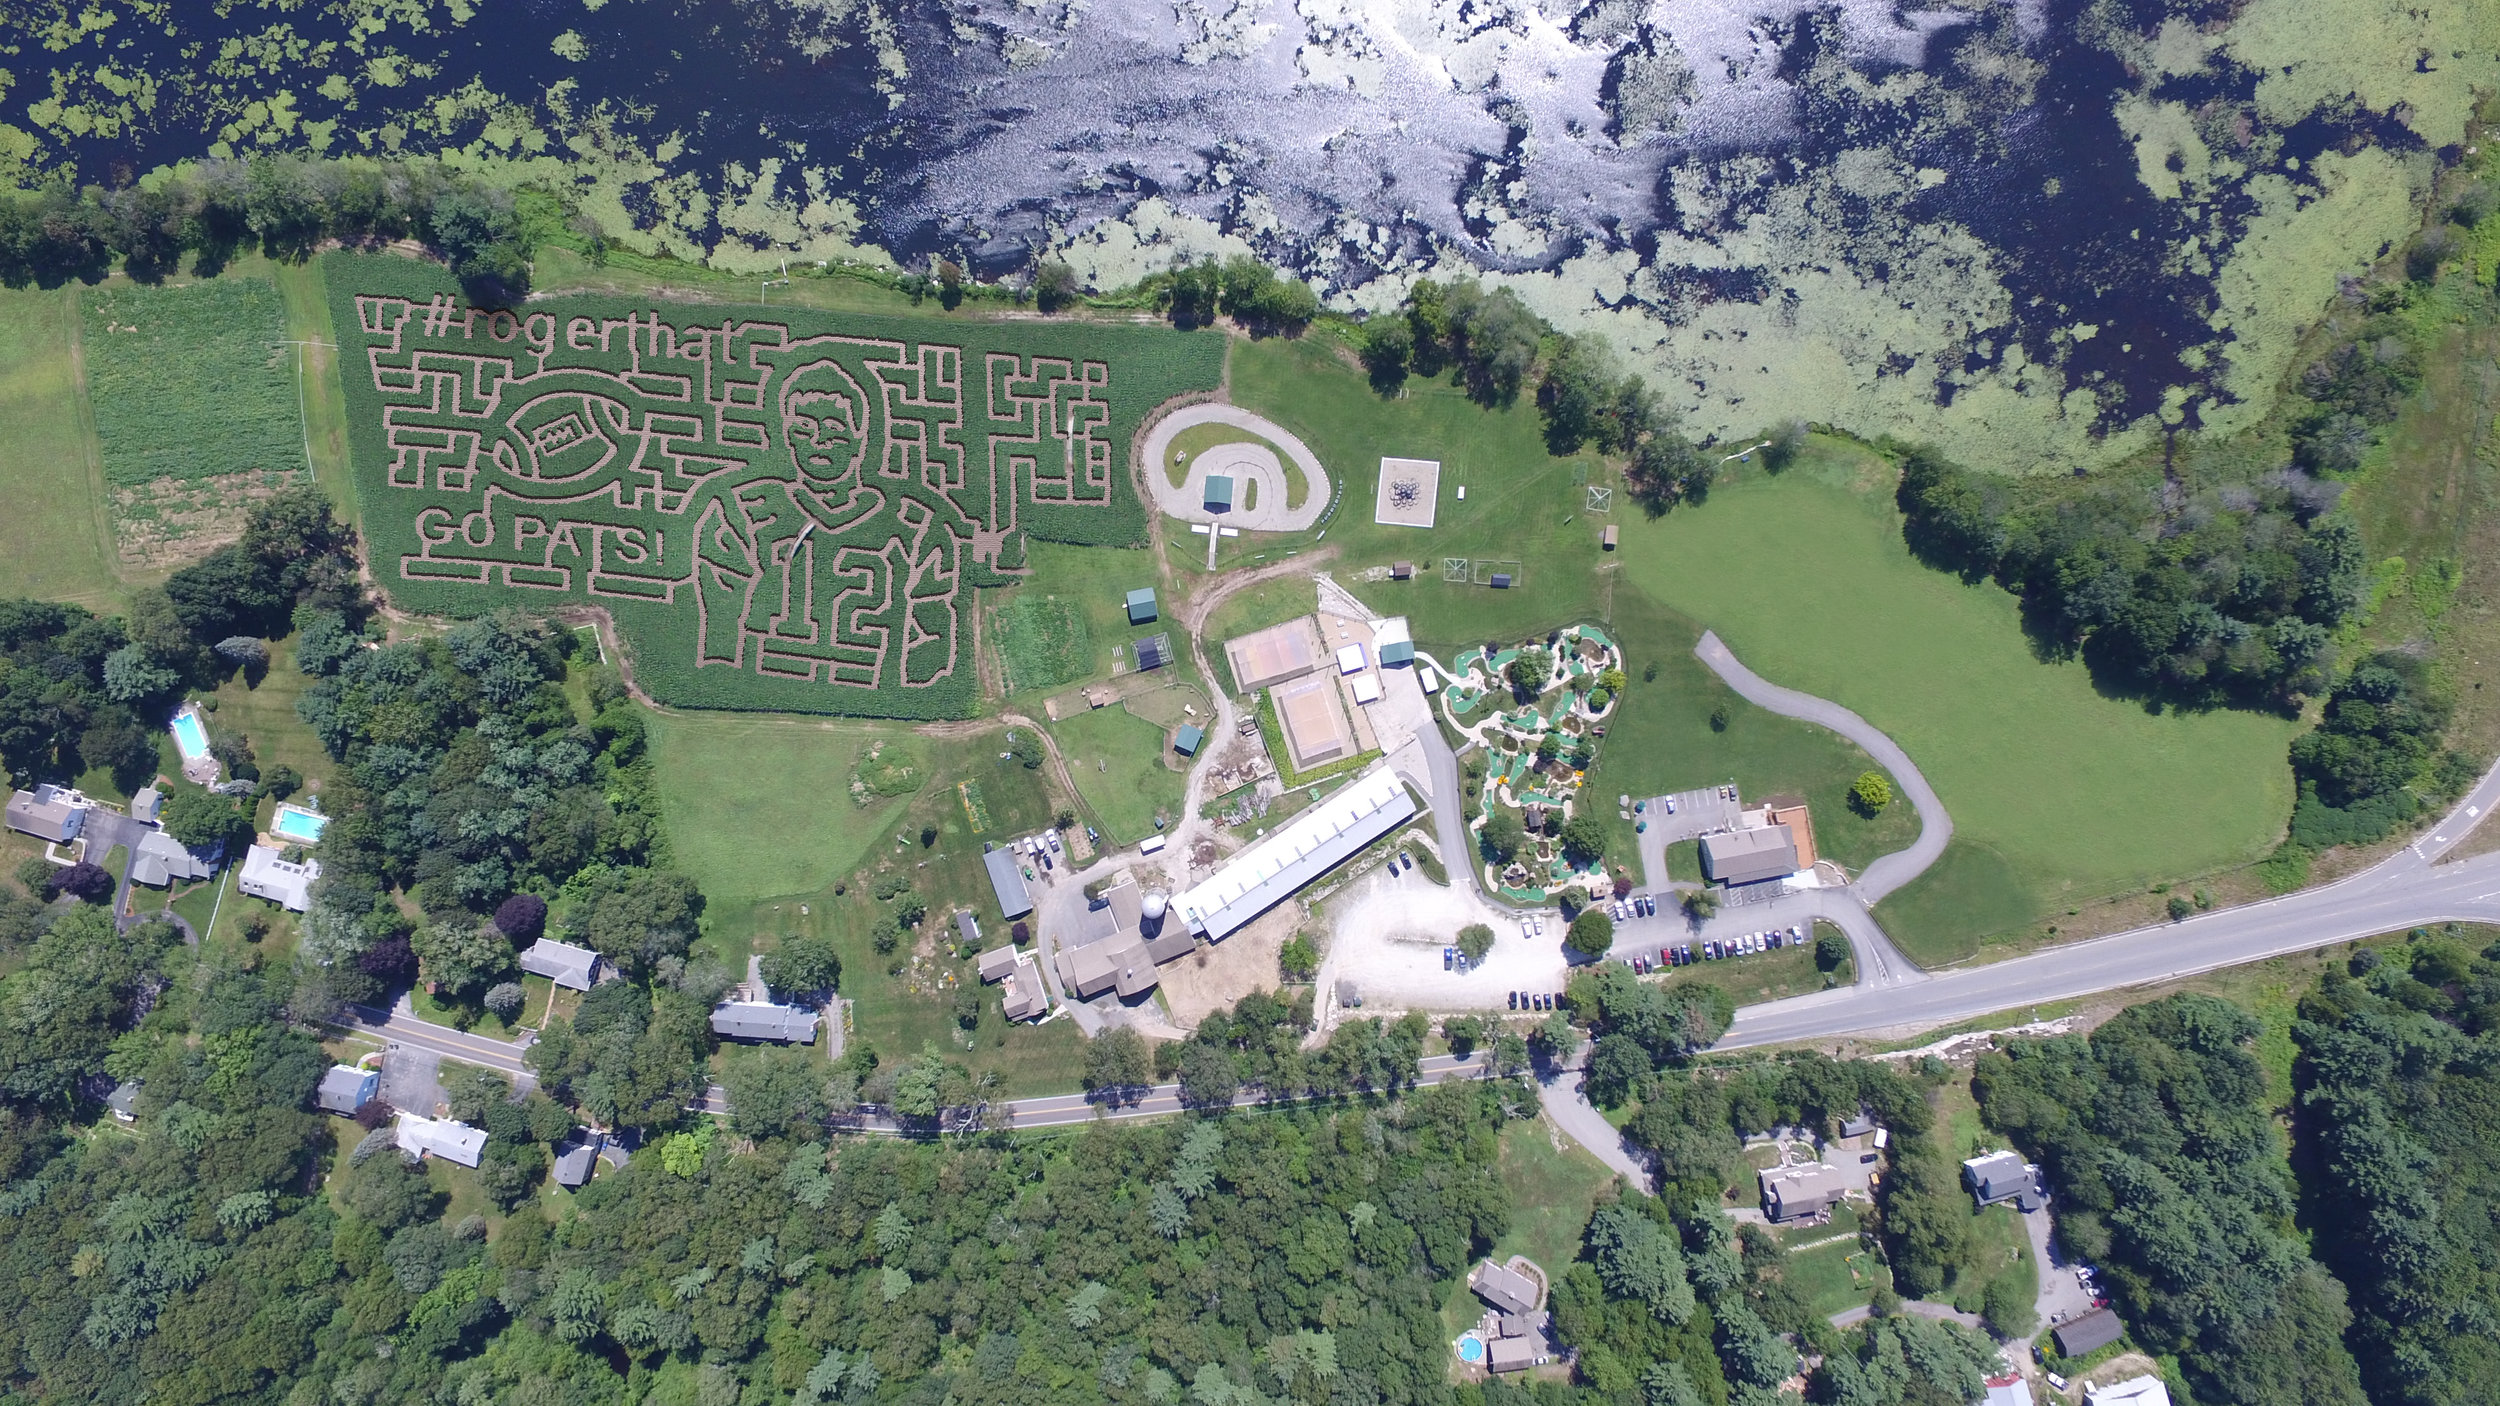 2017 #rogerthat Corn Maze at West End Creamery